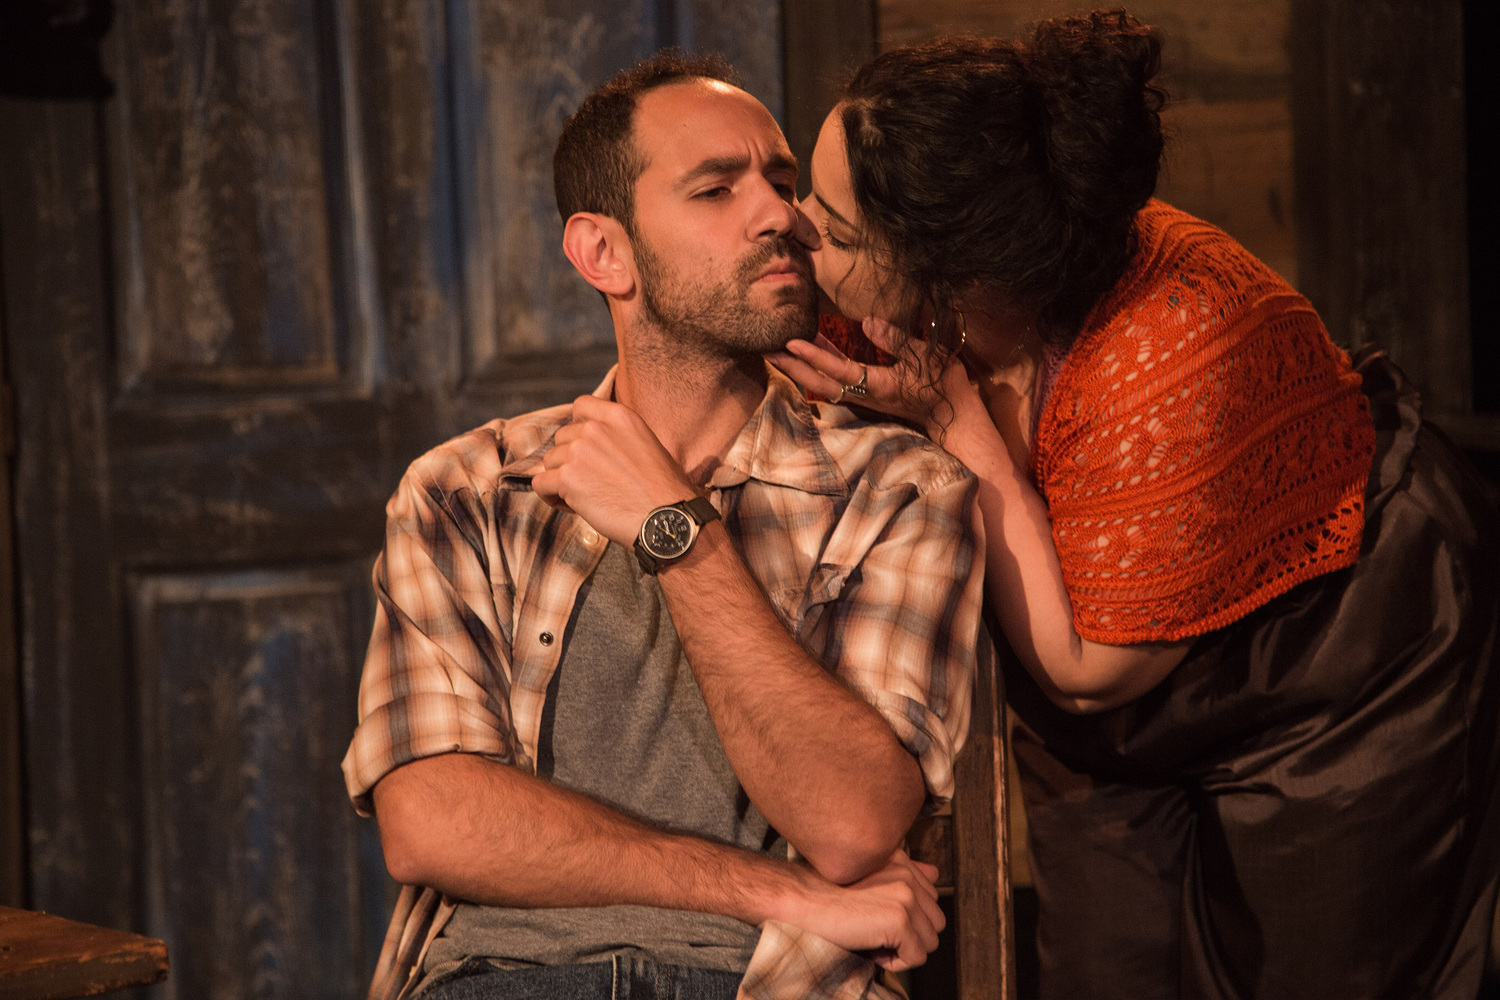 BWW Review: THE RIVER at BoHo Theatre